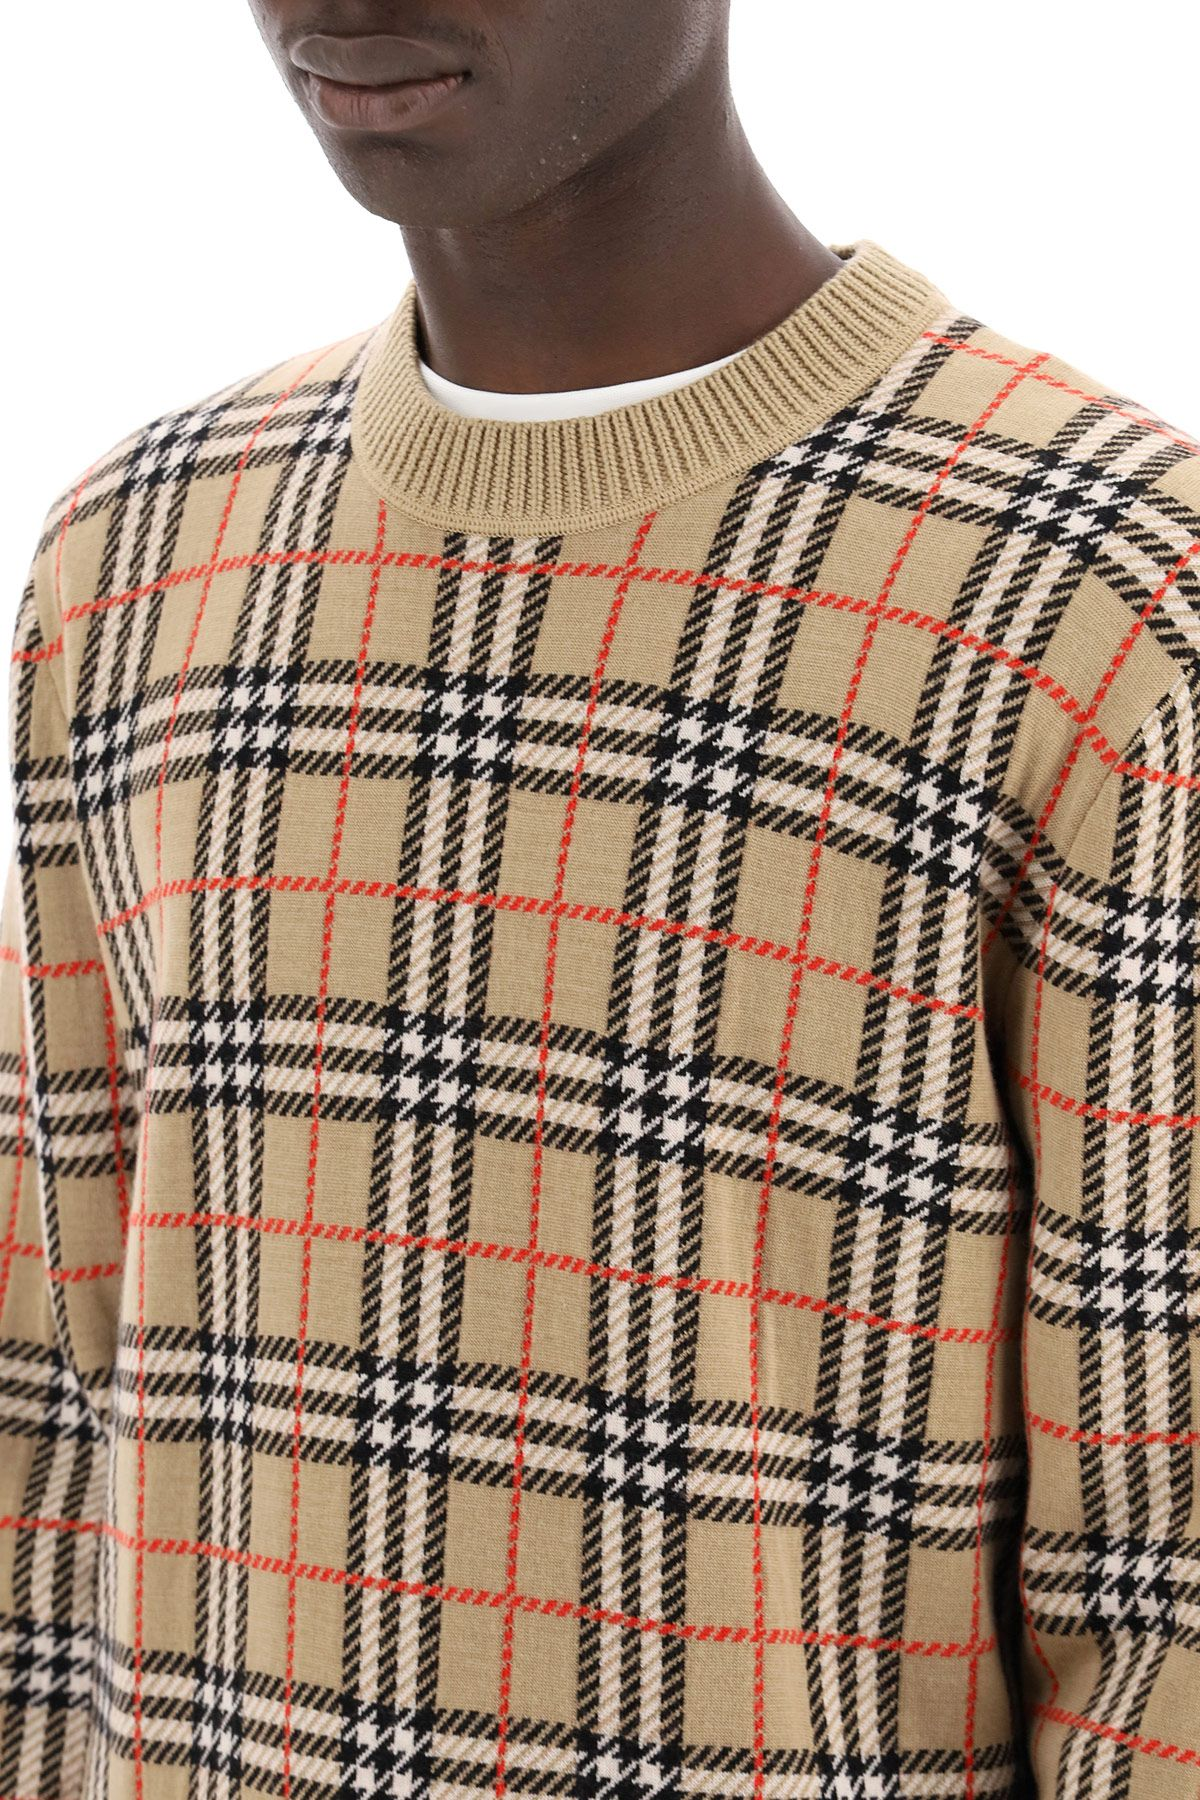 burberry clothing men vintage check sweater